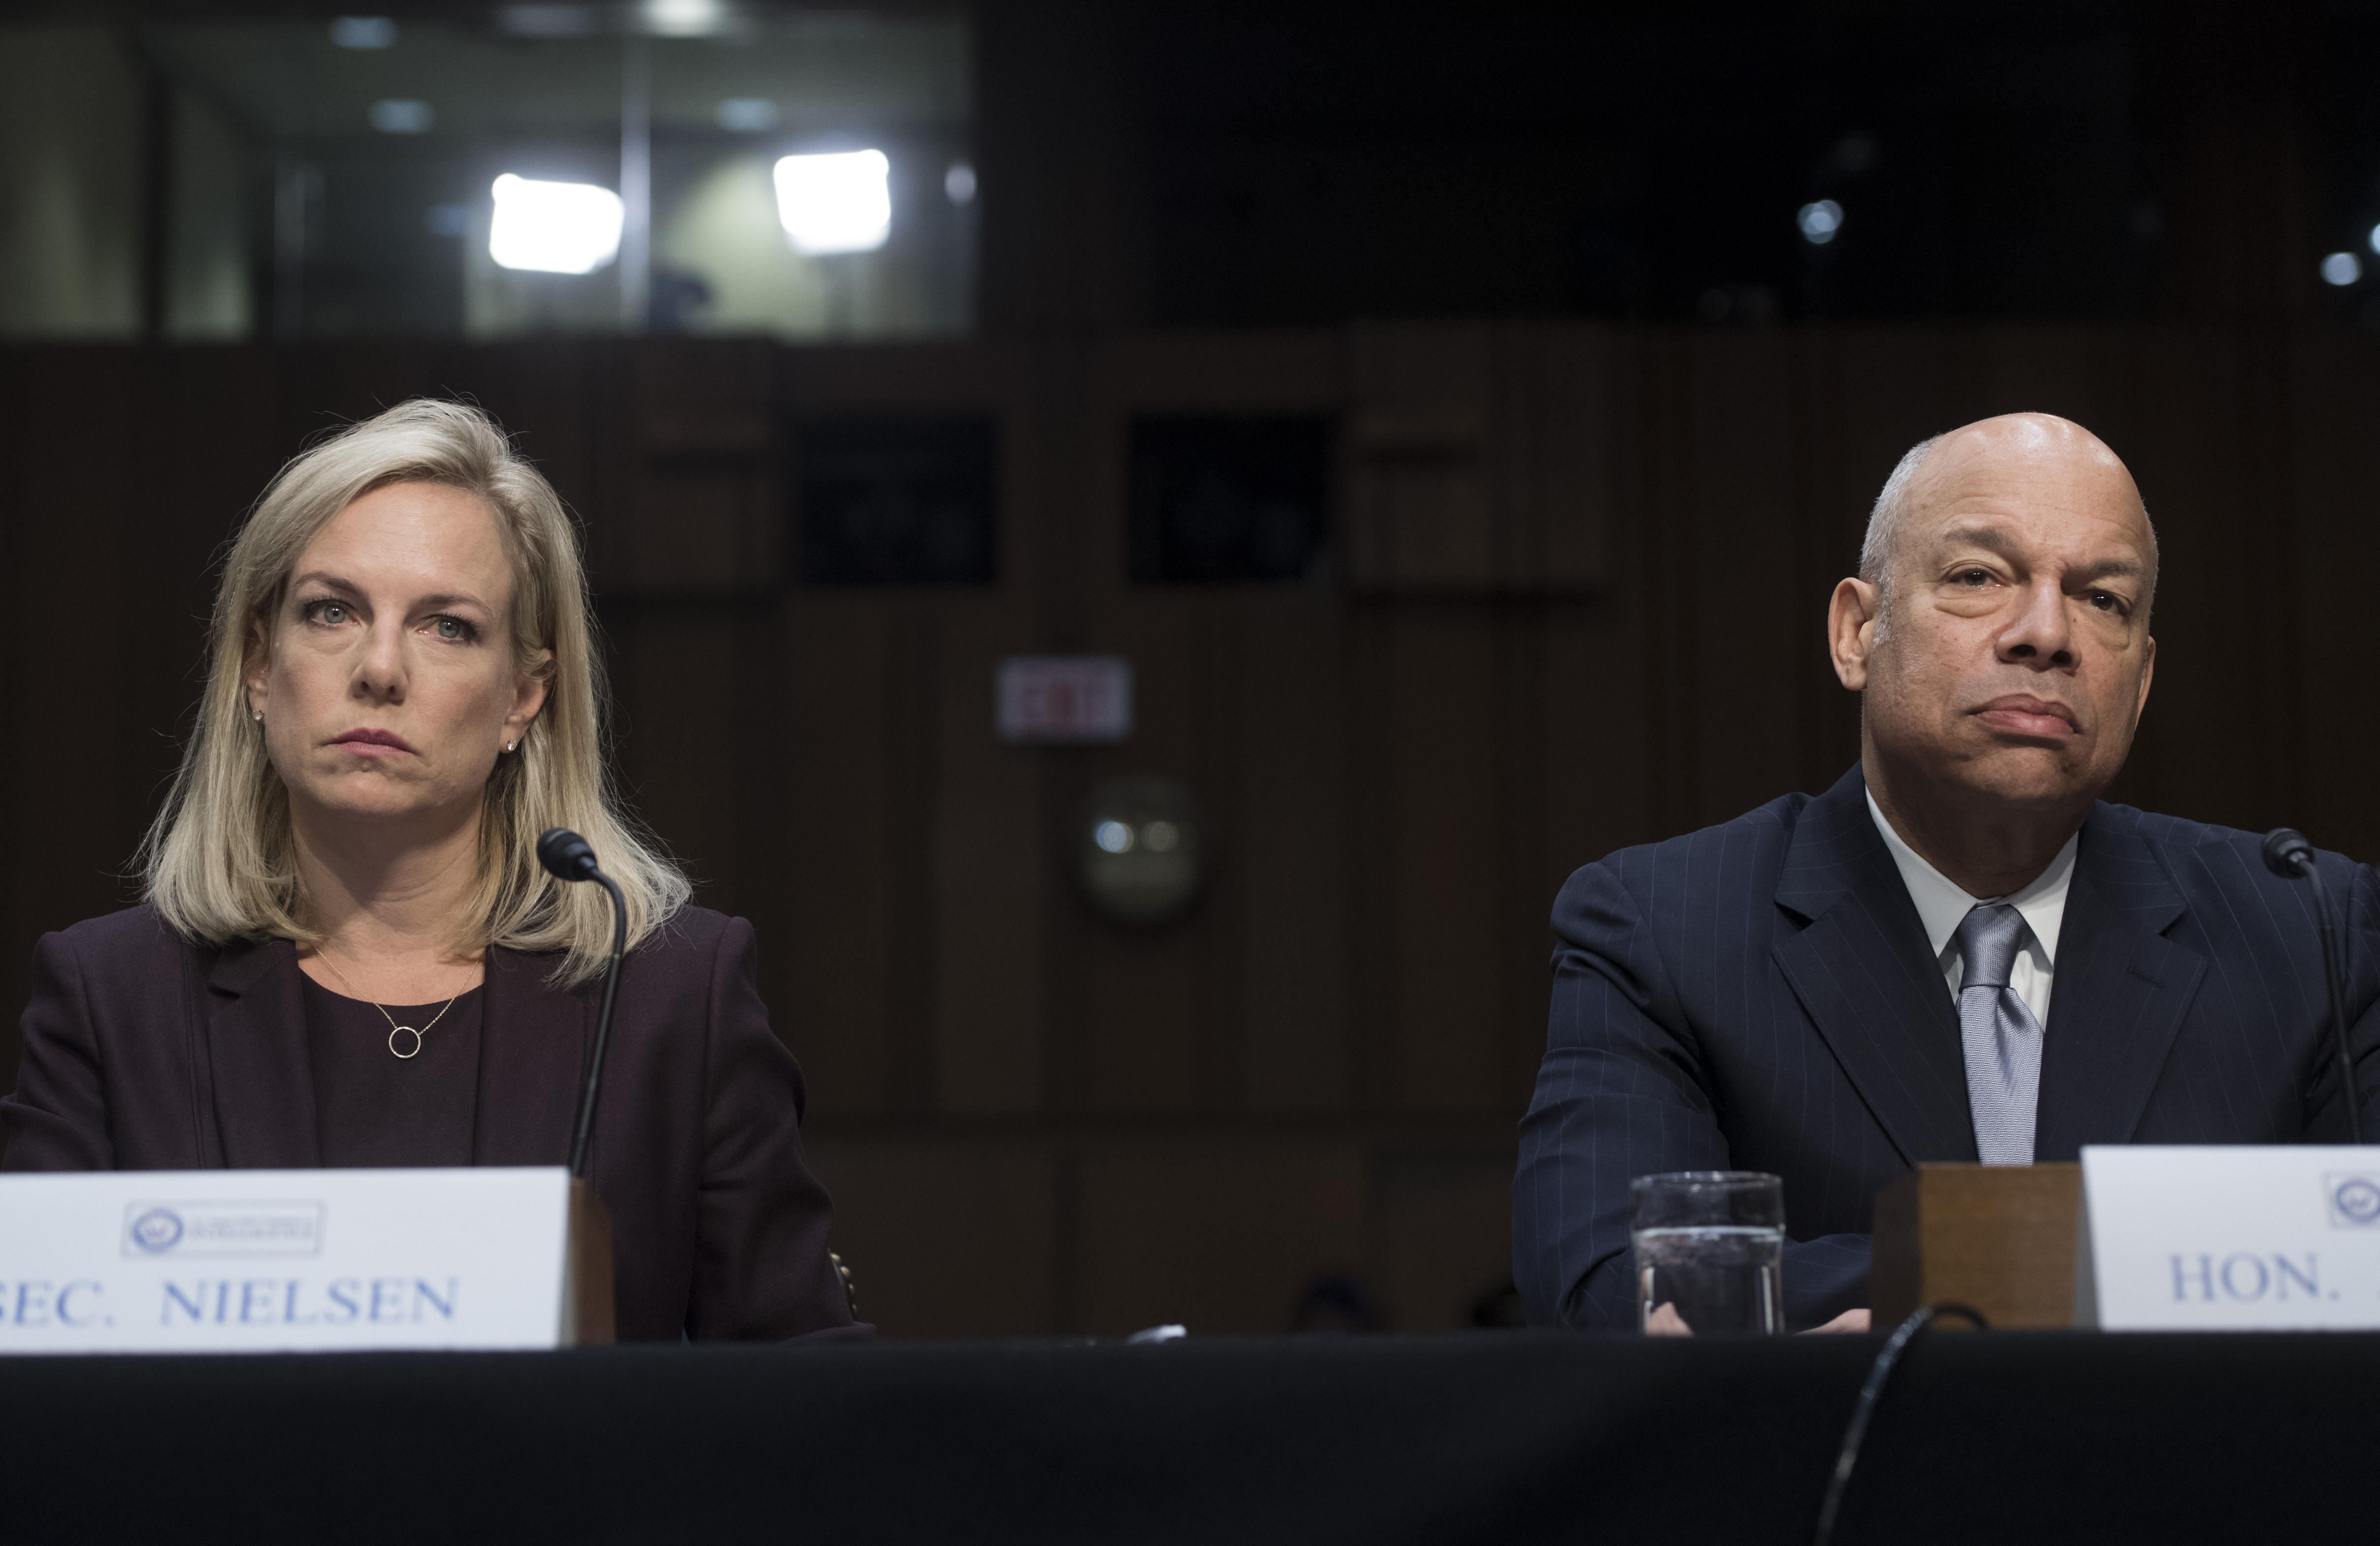 US Secretary of Homeland Security Kirstjen Nielsen and her predecessor Jeh Johnson testify about election security during a Senate Select Intelligence Committee hearing